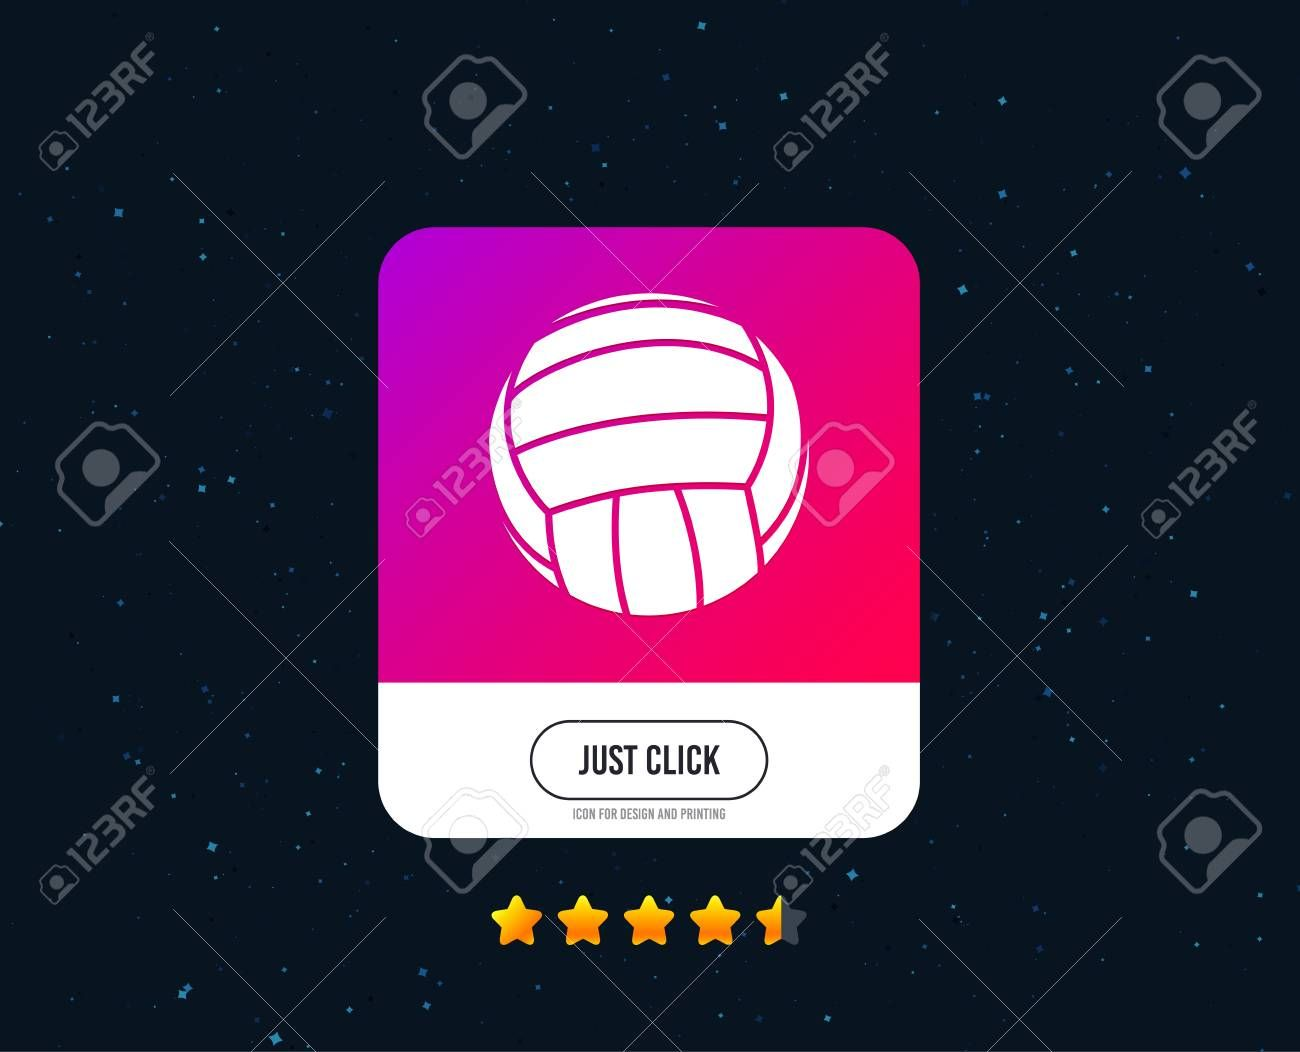 Volleyball Sign Icon Beach Sport Symbol Web Or Internet Icon Design Rating Stars Just Click Button Ve Volleyball Signs Icon Design